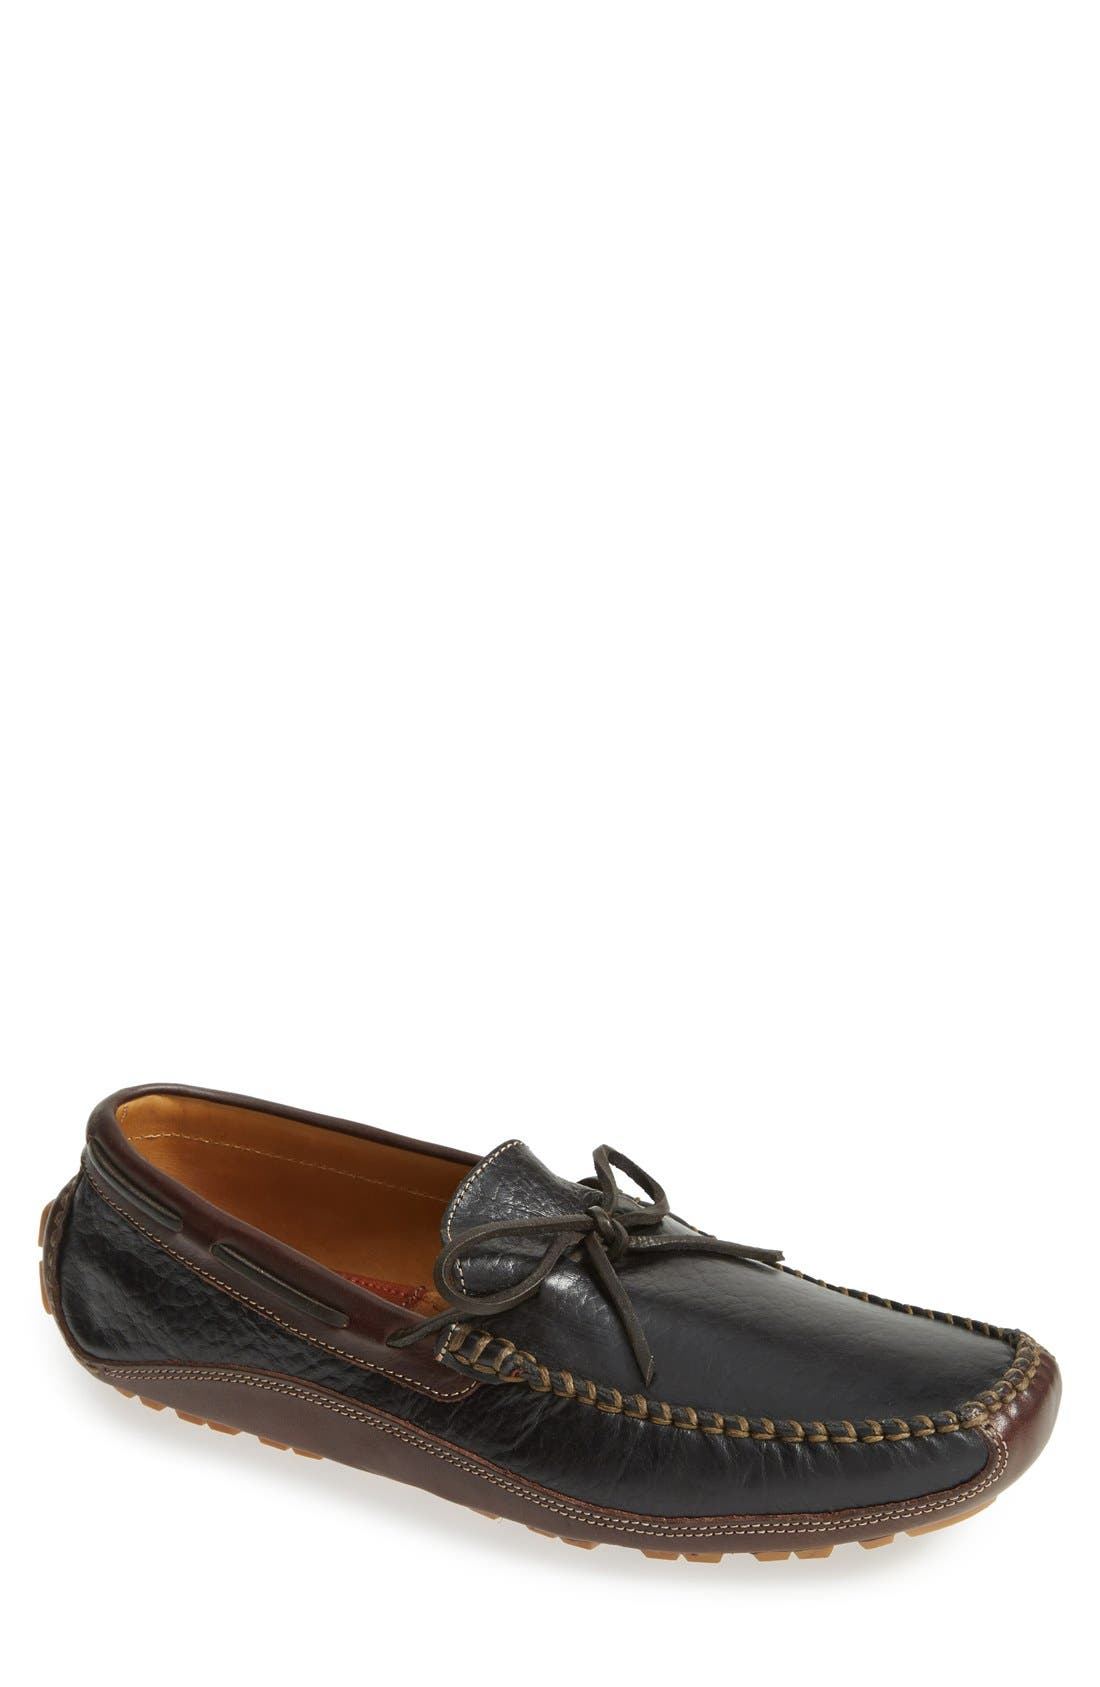 Main Image - Trask 'Drake' Leather Driving Shoe